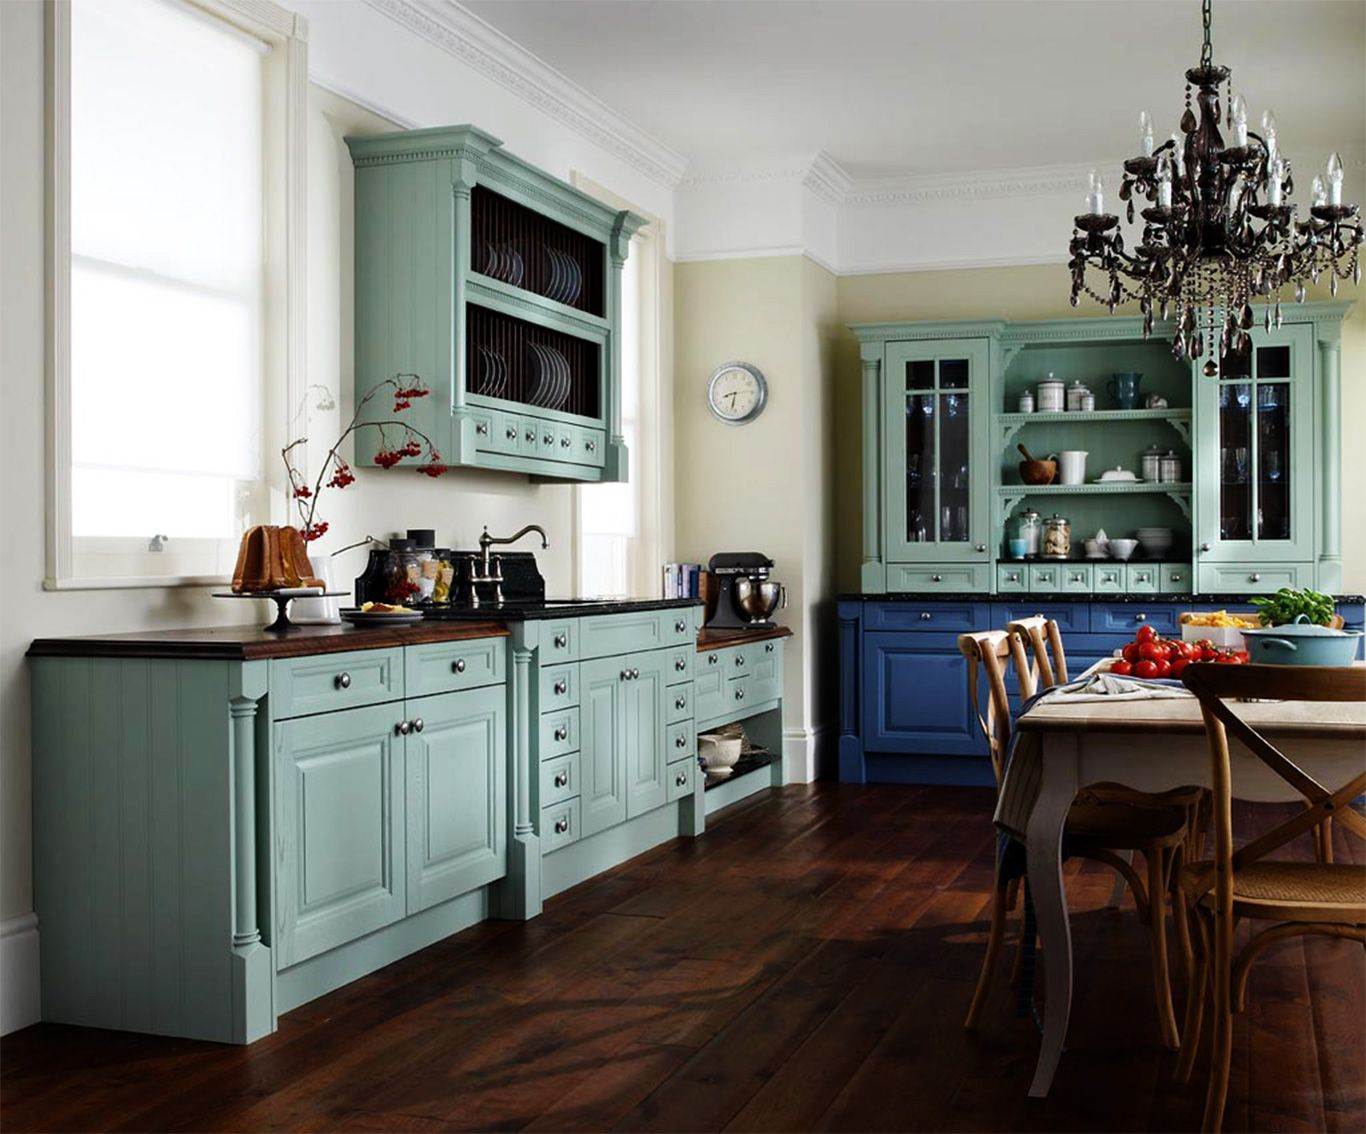 kitchens with painted cabinets20 kitchen cabinet colors ideas mybktouch with kitchen cabinets